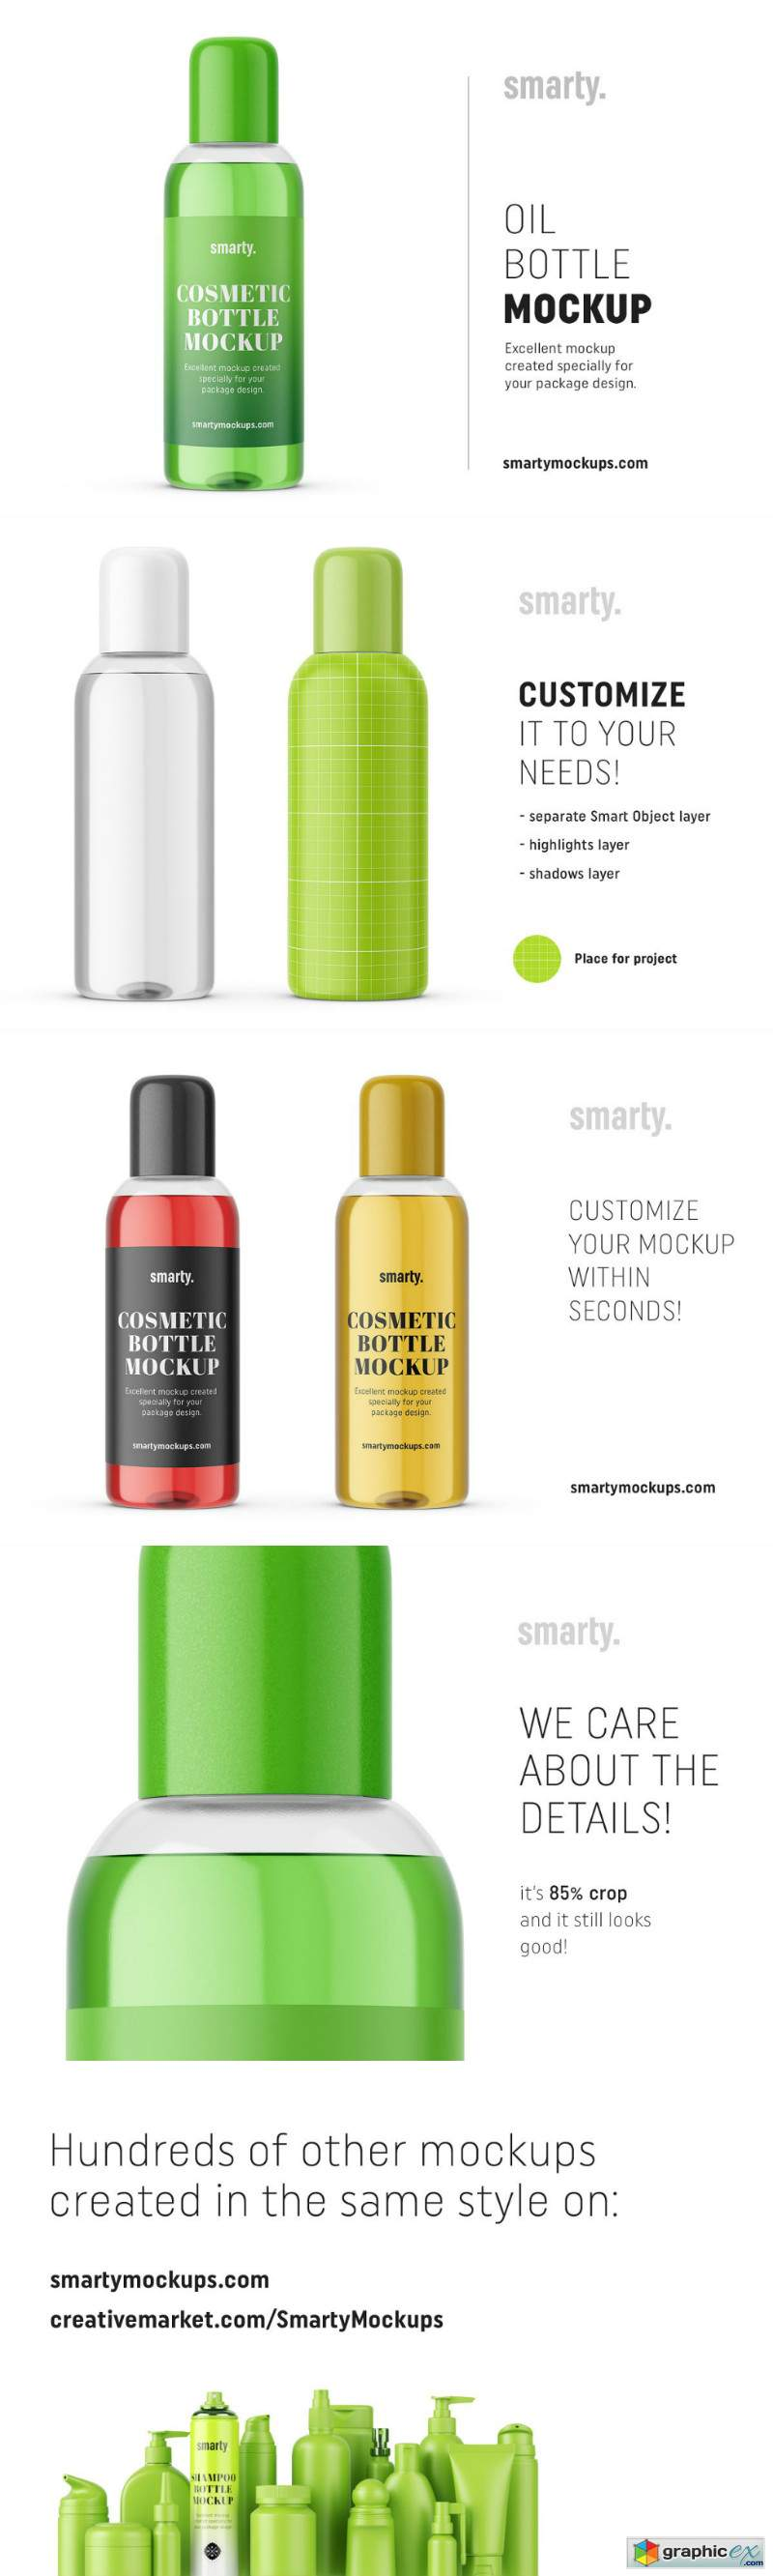 Cosmetic oil bottle mockup